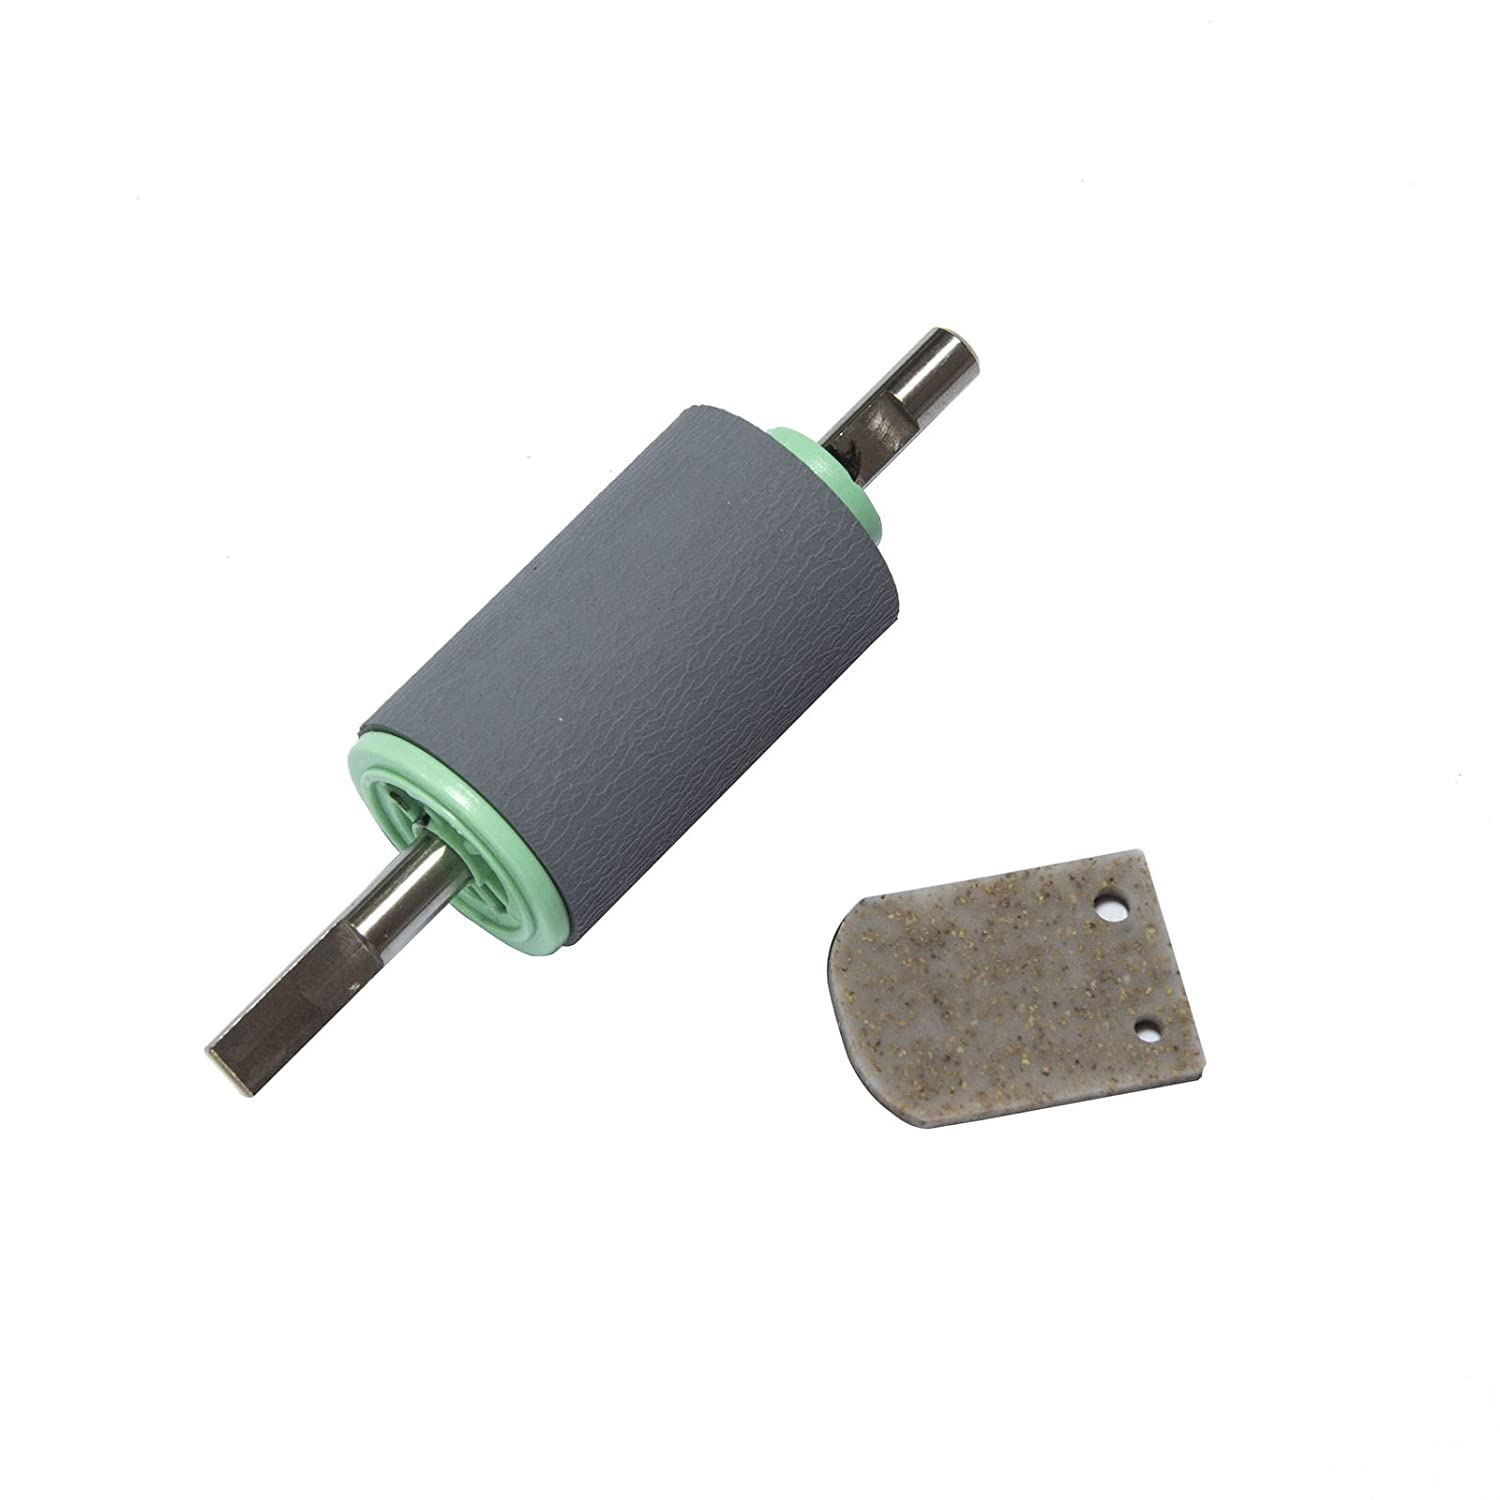 YANZEO LD6999001 LD0633001 for Brother ADS1000 ADS1500 Pick Roller and Separation Pad